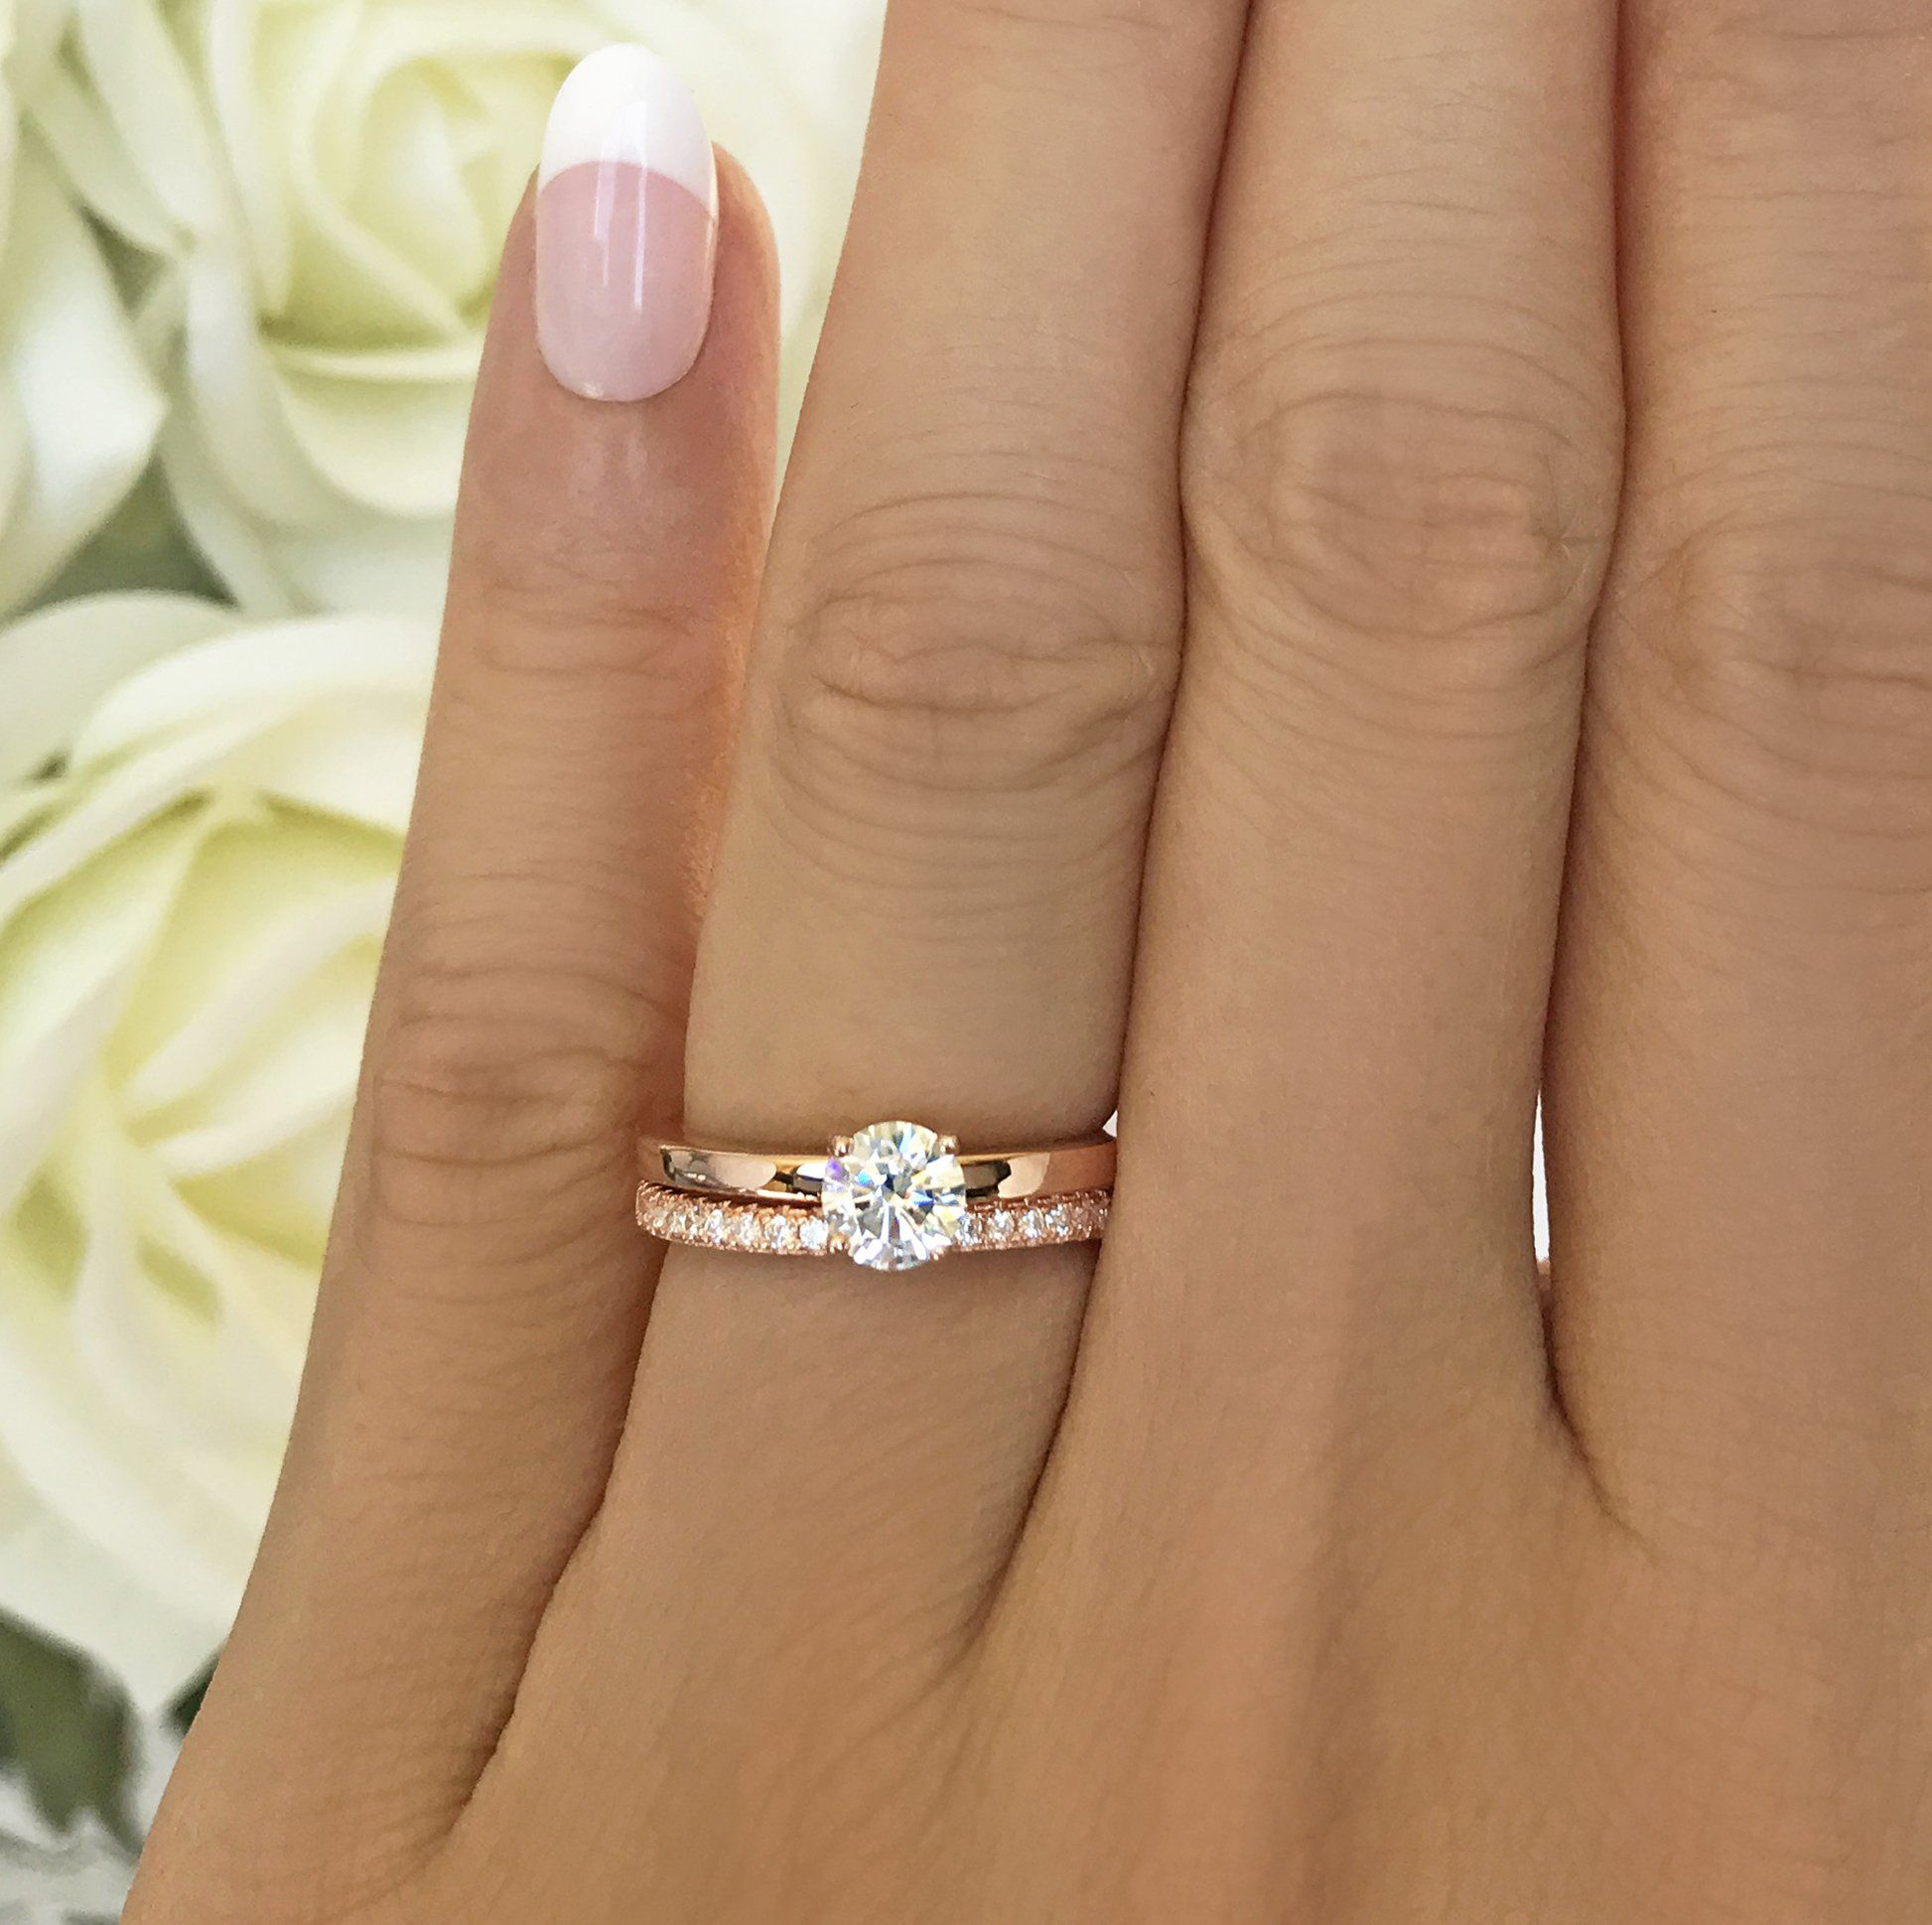 1 2 Ct Round Solitaire Set Rose Gp Yellow Gold Diamond Wedding Band Gold Diamond Wedding Band Solitaire Engagement Ring Rose Gold